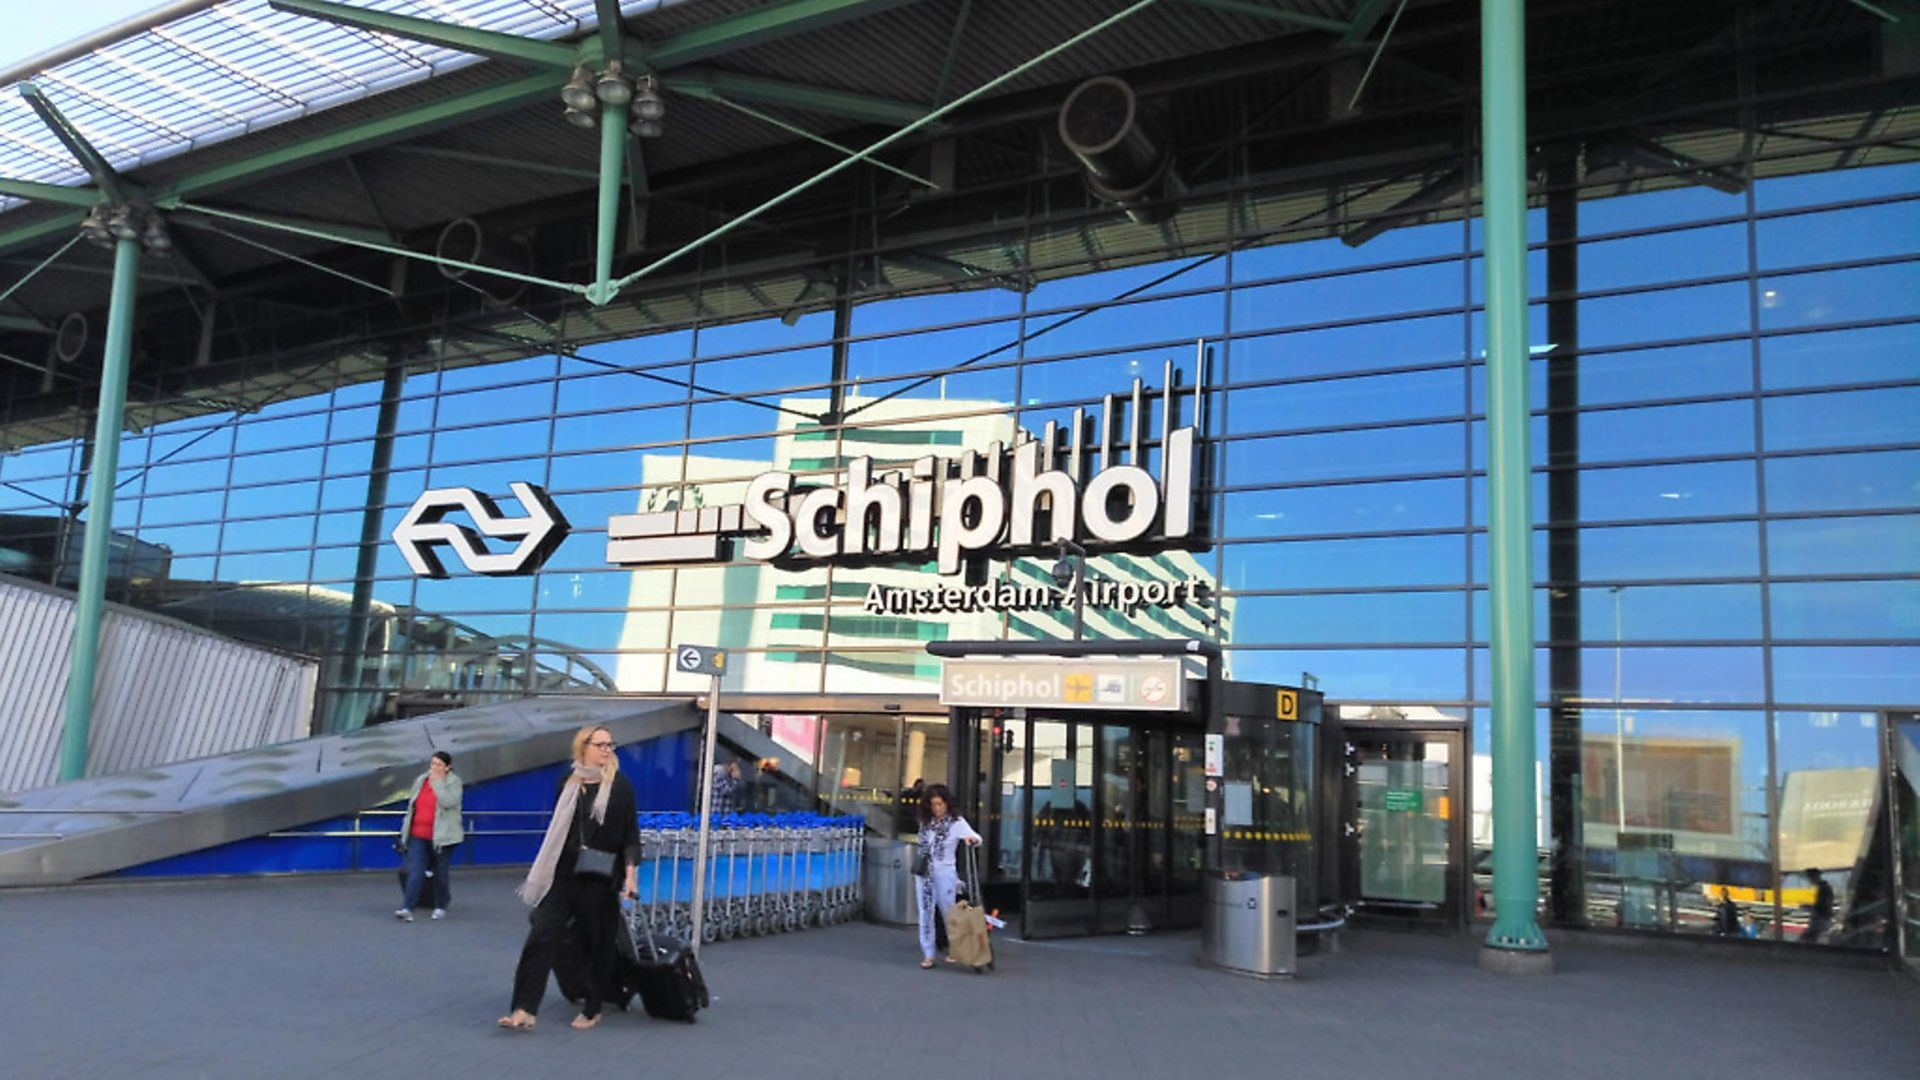 At Amsterdam's Schiphol airport, passengers are often told to 'keep' passports ready. Why do British airports say 'have'? Photo: Wikicommons - Credit: Archant